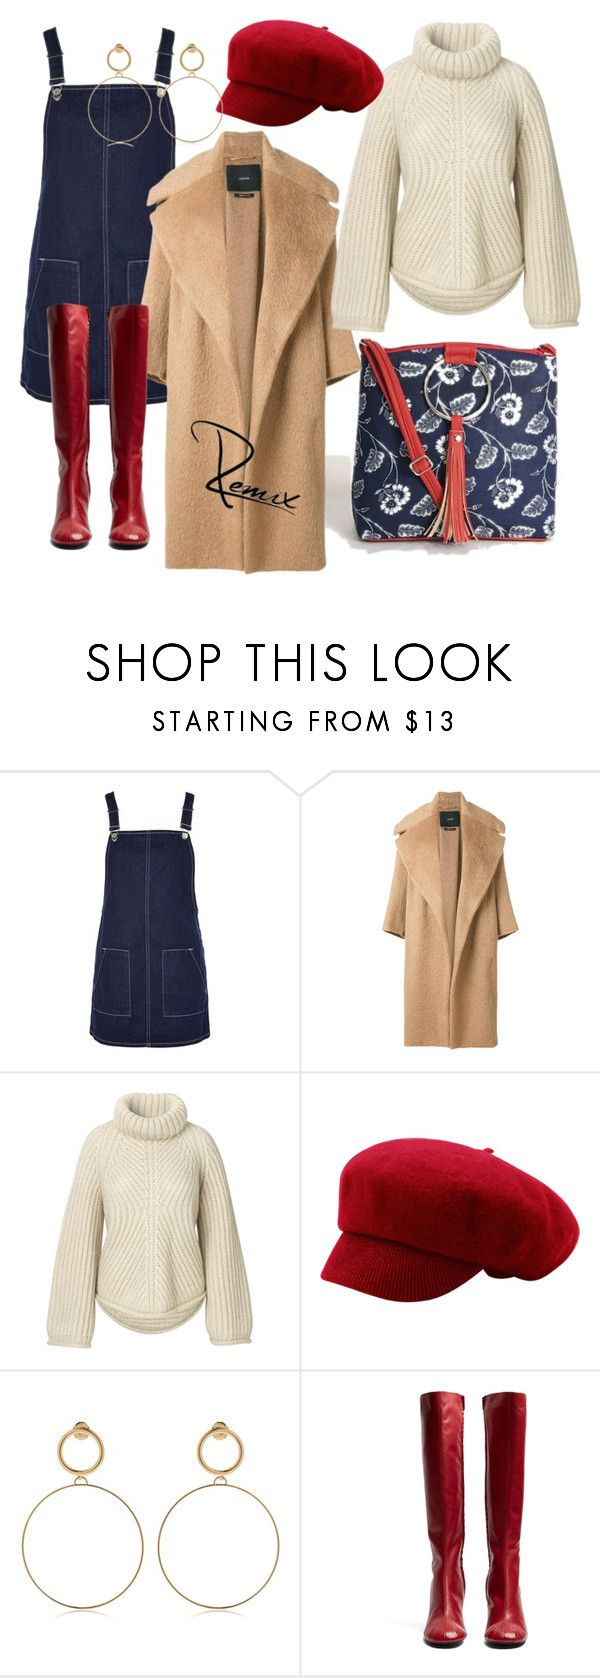 """""""Falling in love"""" by aleva on Polyvore featuring Topshop, MaxMara, Maria Francesca Pepe and Joseph"""